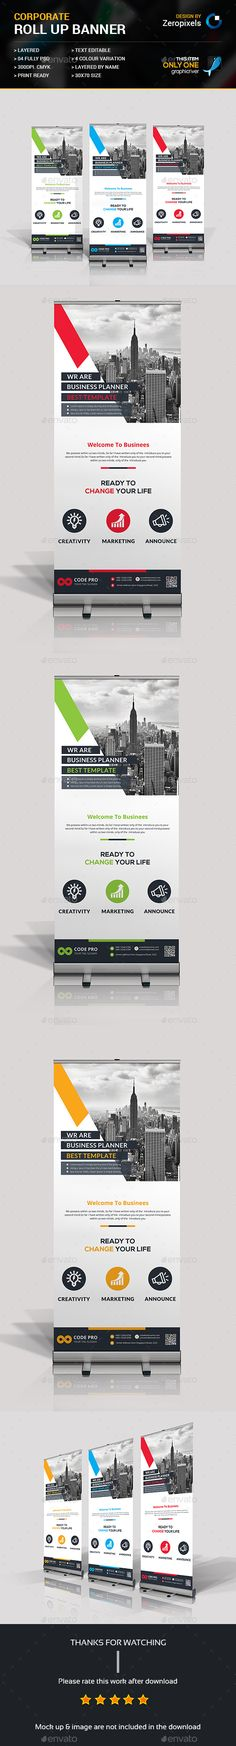 Roll Up Banner Template PSD. Download here: http://graphicriver.net/item/roll-up-banner/16728398?ref=ksioks